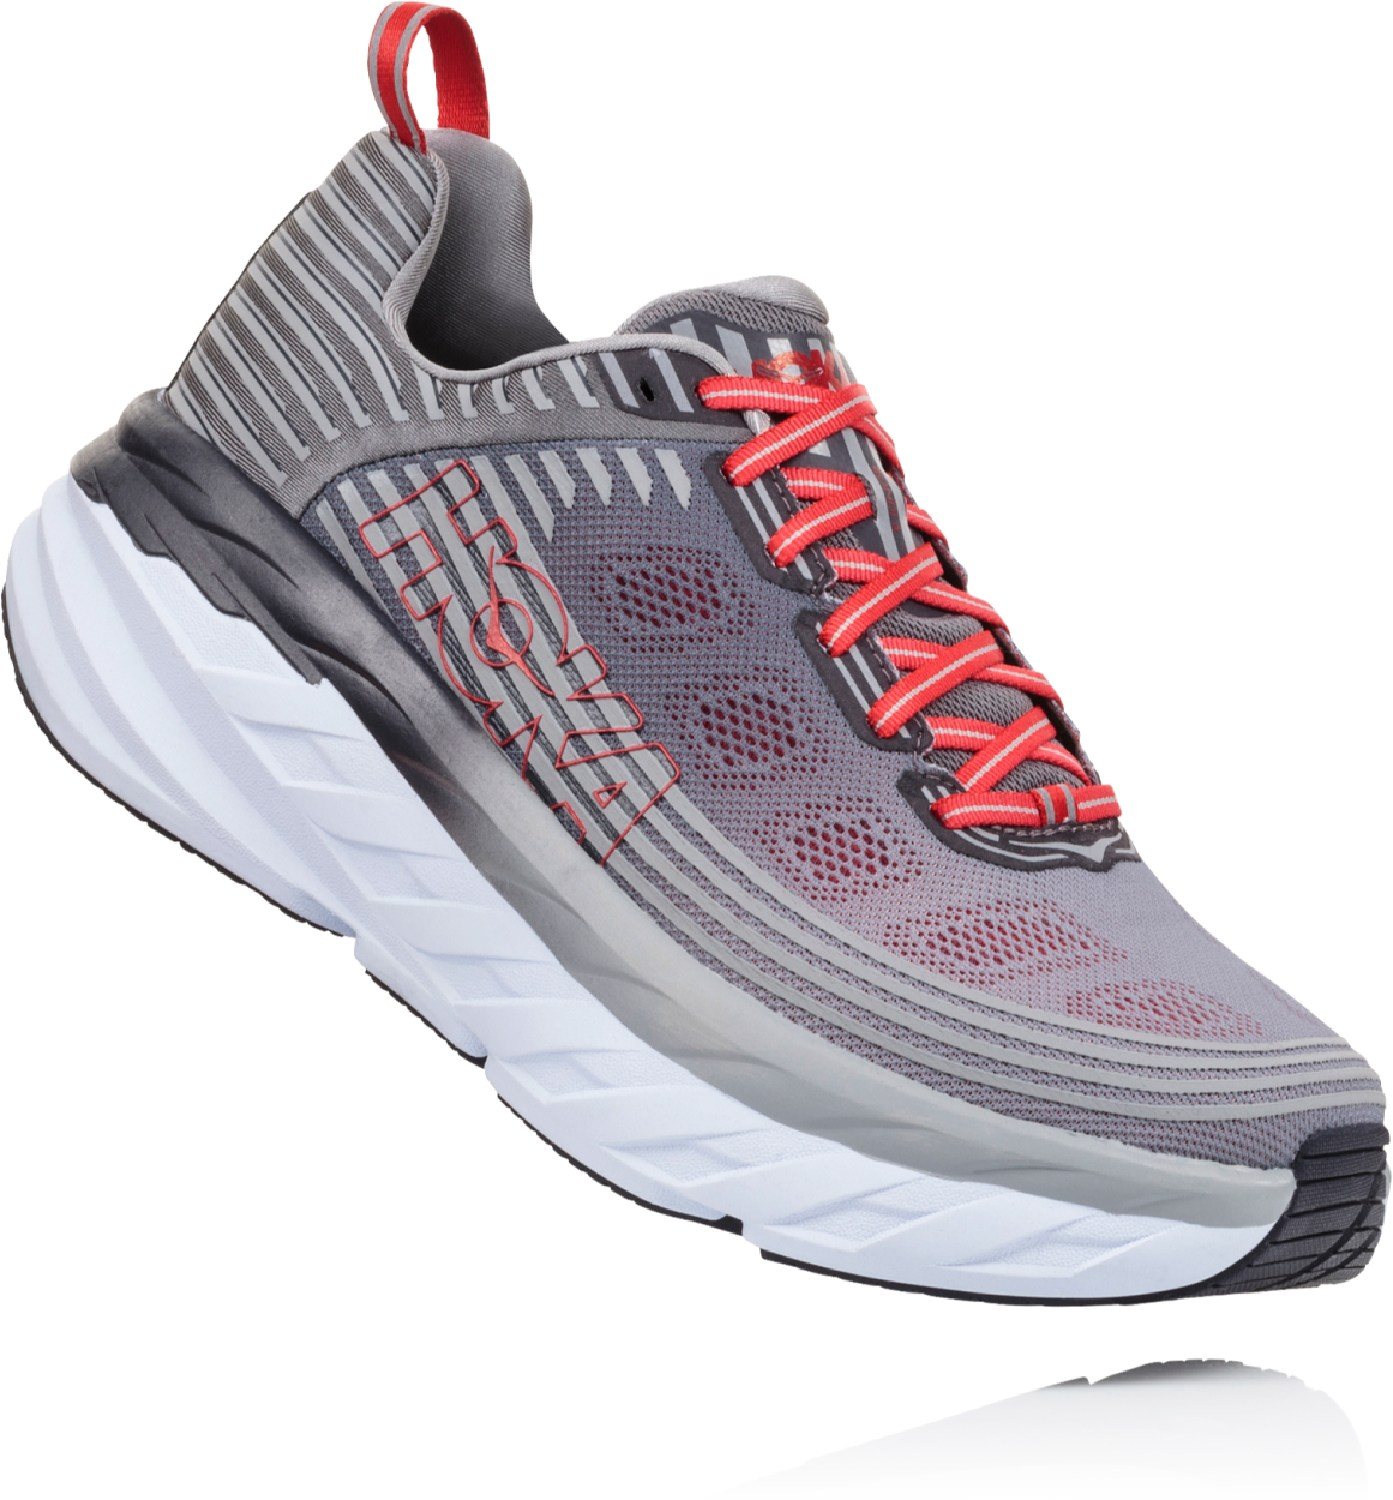 HOKA ONE ONE Bondi 6 Road-Running Shoes - Men's